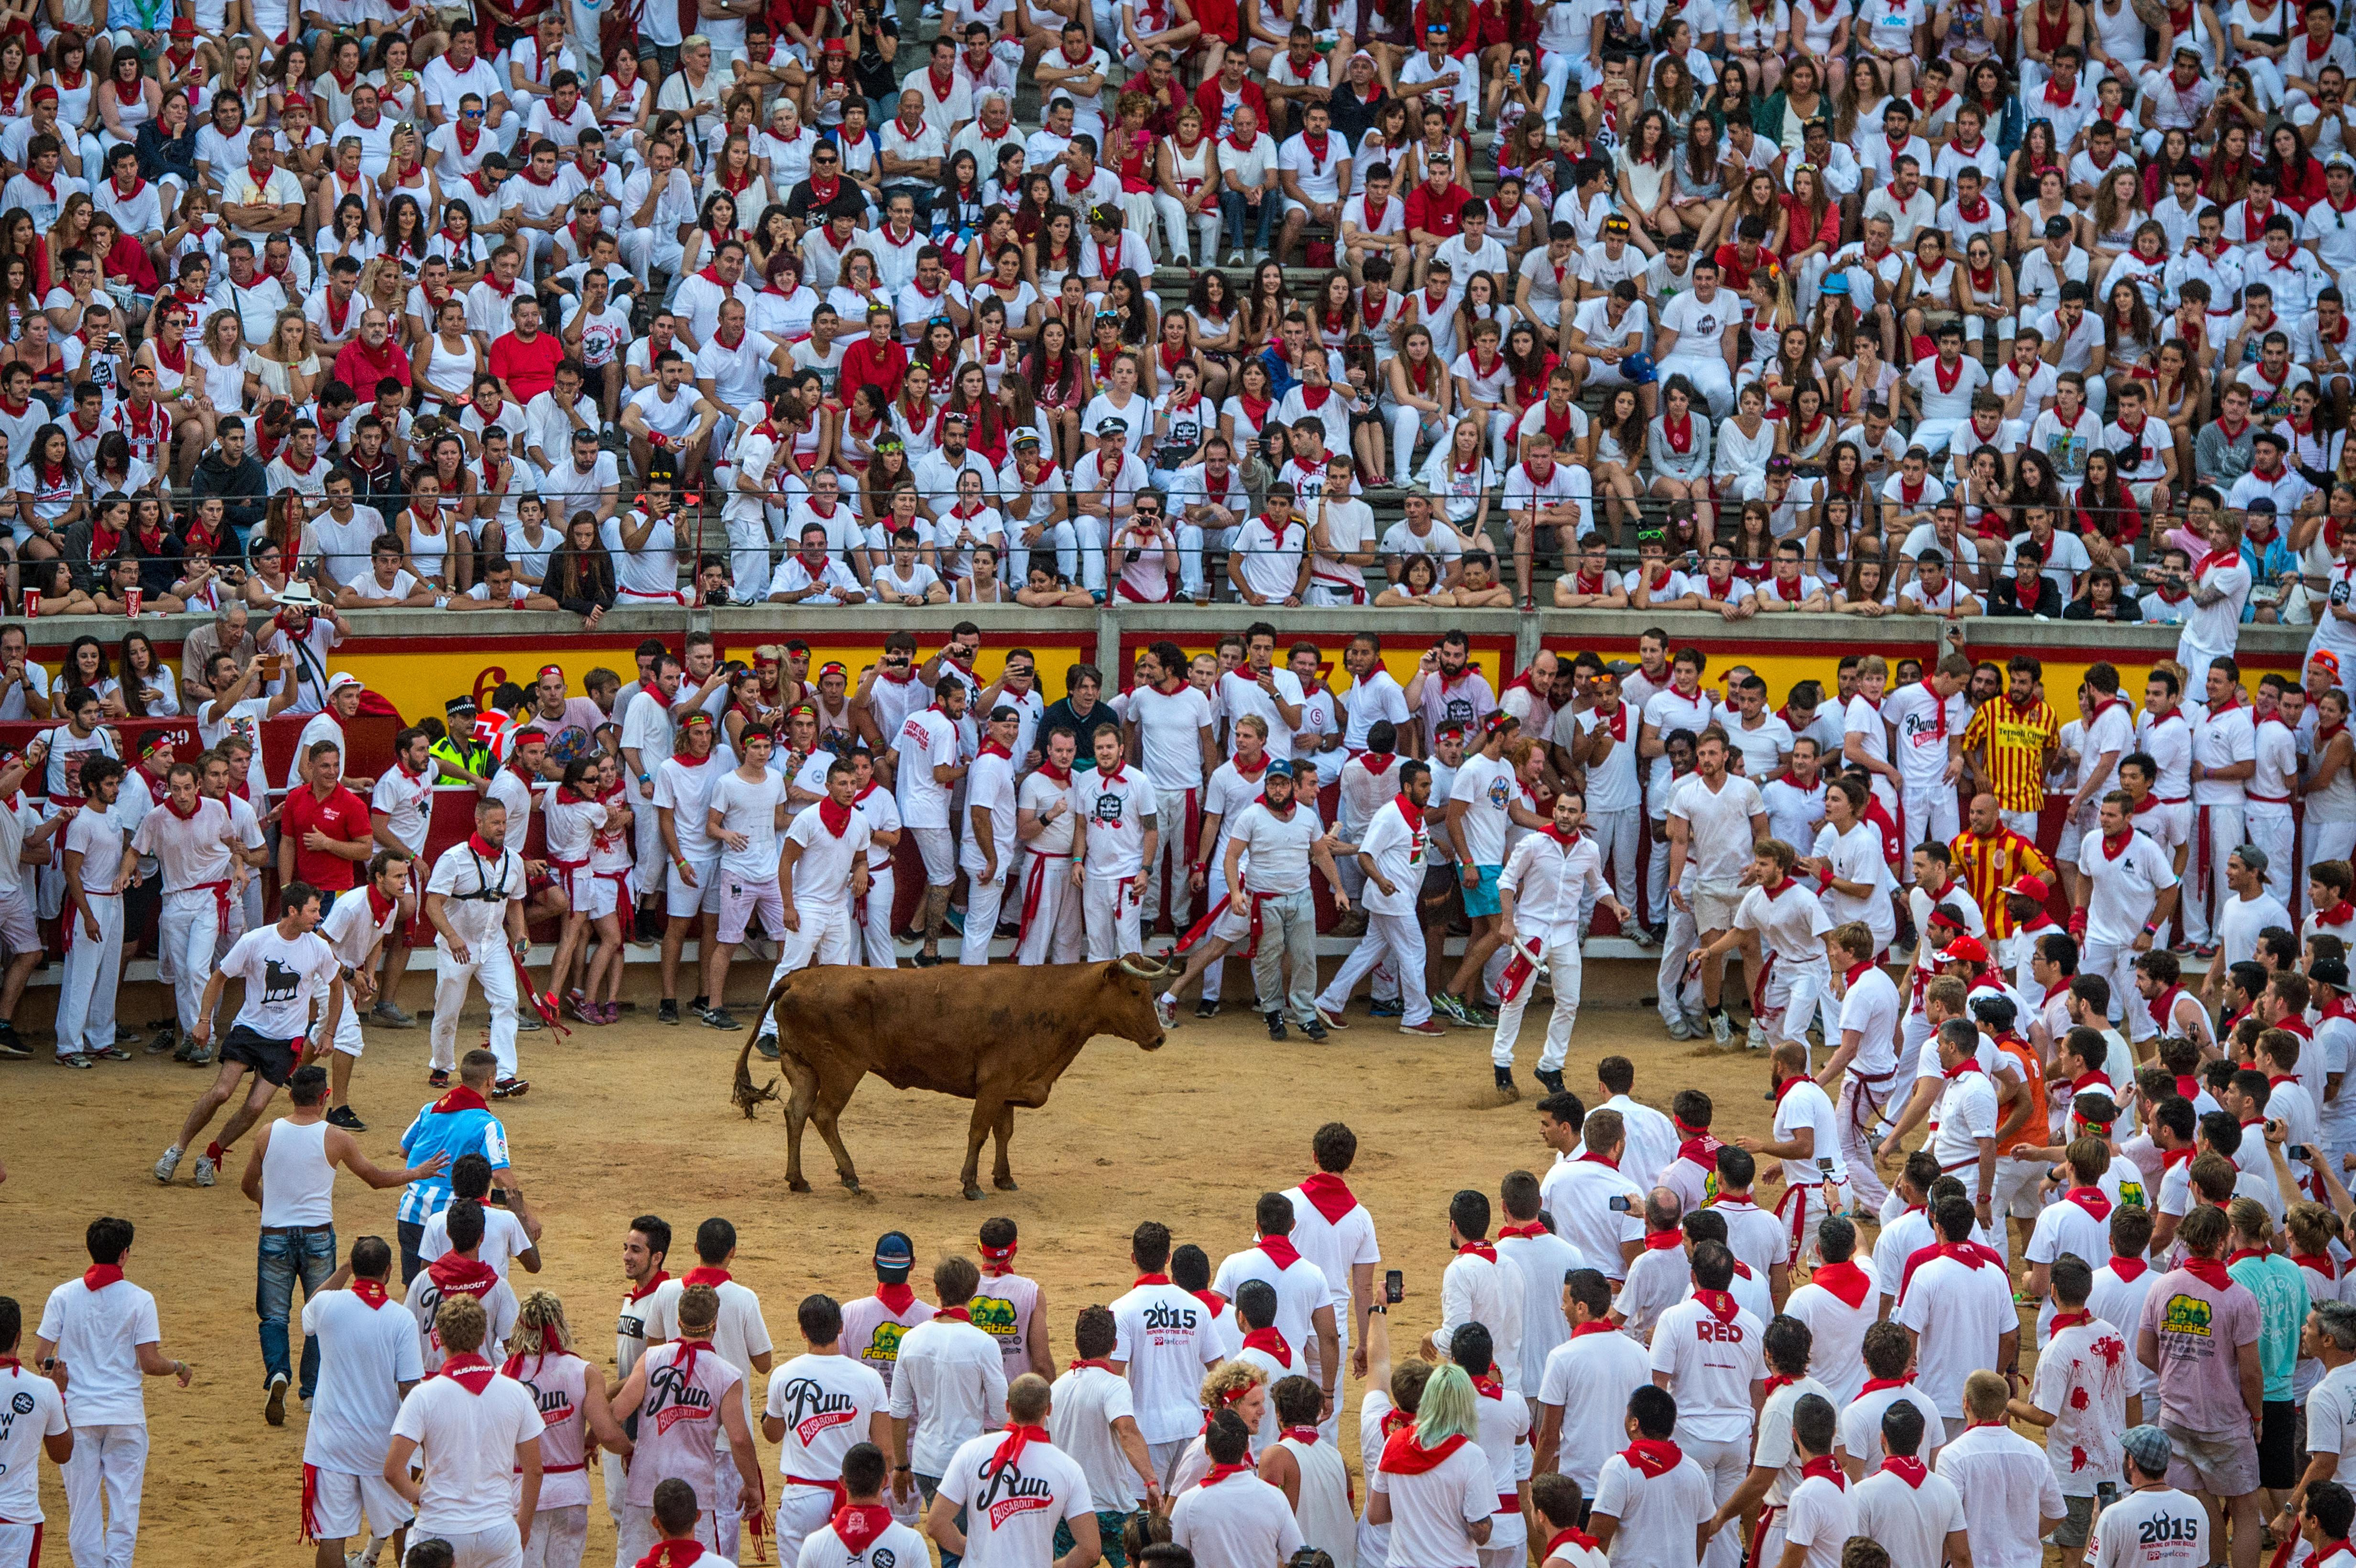 Revellers attempt to avoid a fighting calf inside Pamplona bullring during the second day of the San Fermin Running of the Bulls festival on July 7, 2015 in Pamplona, Spain.